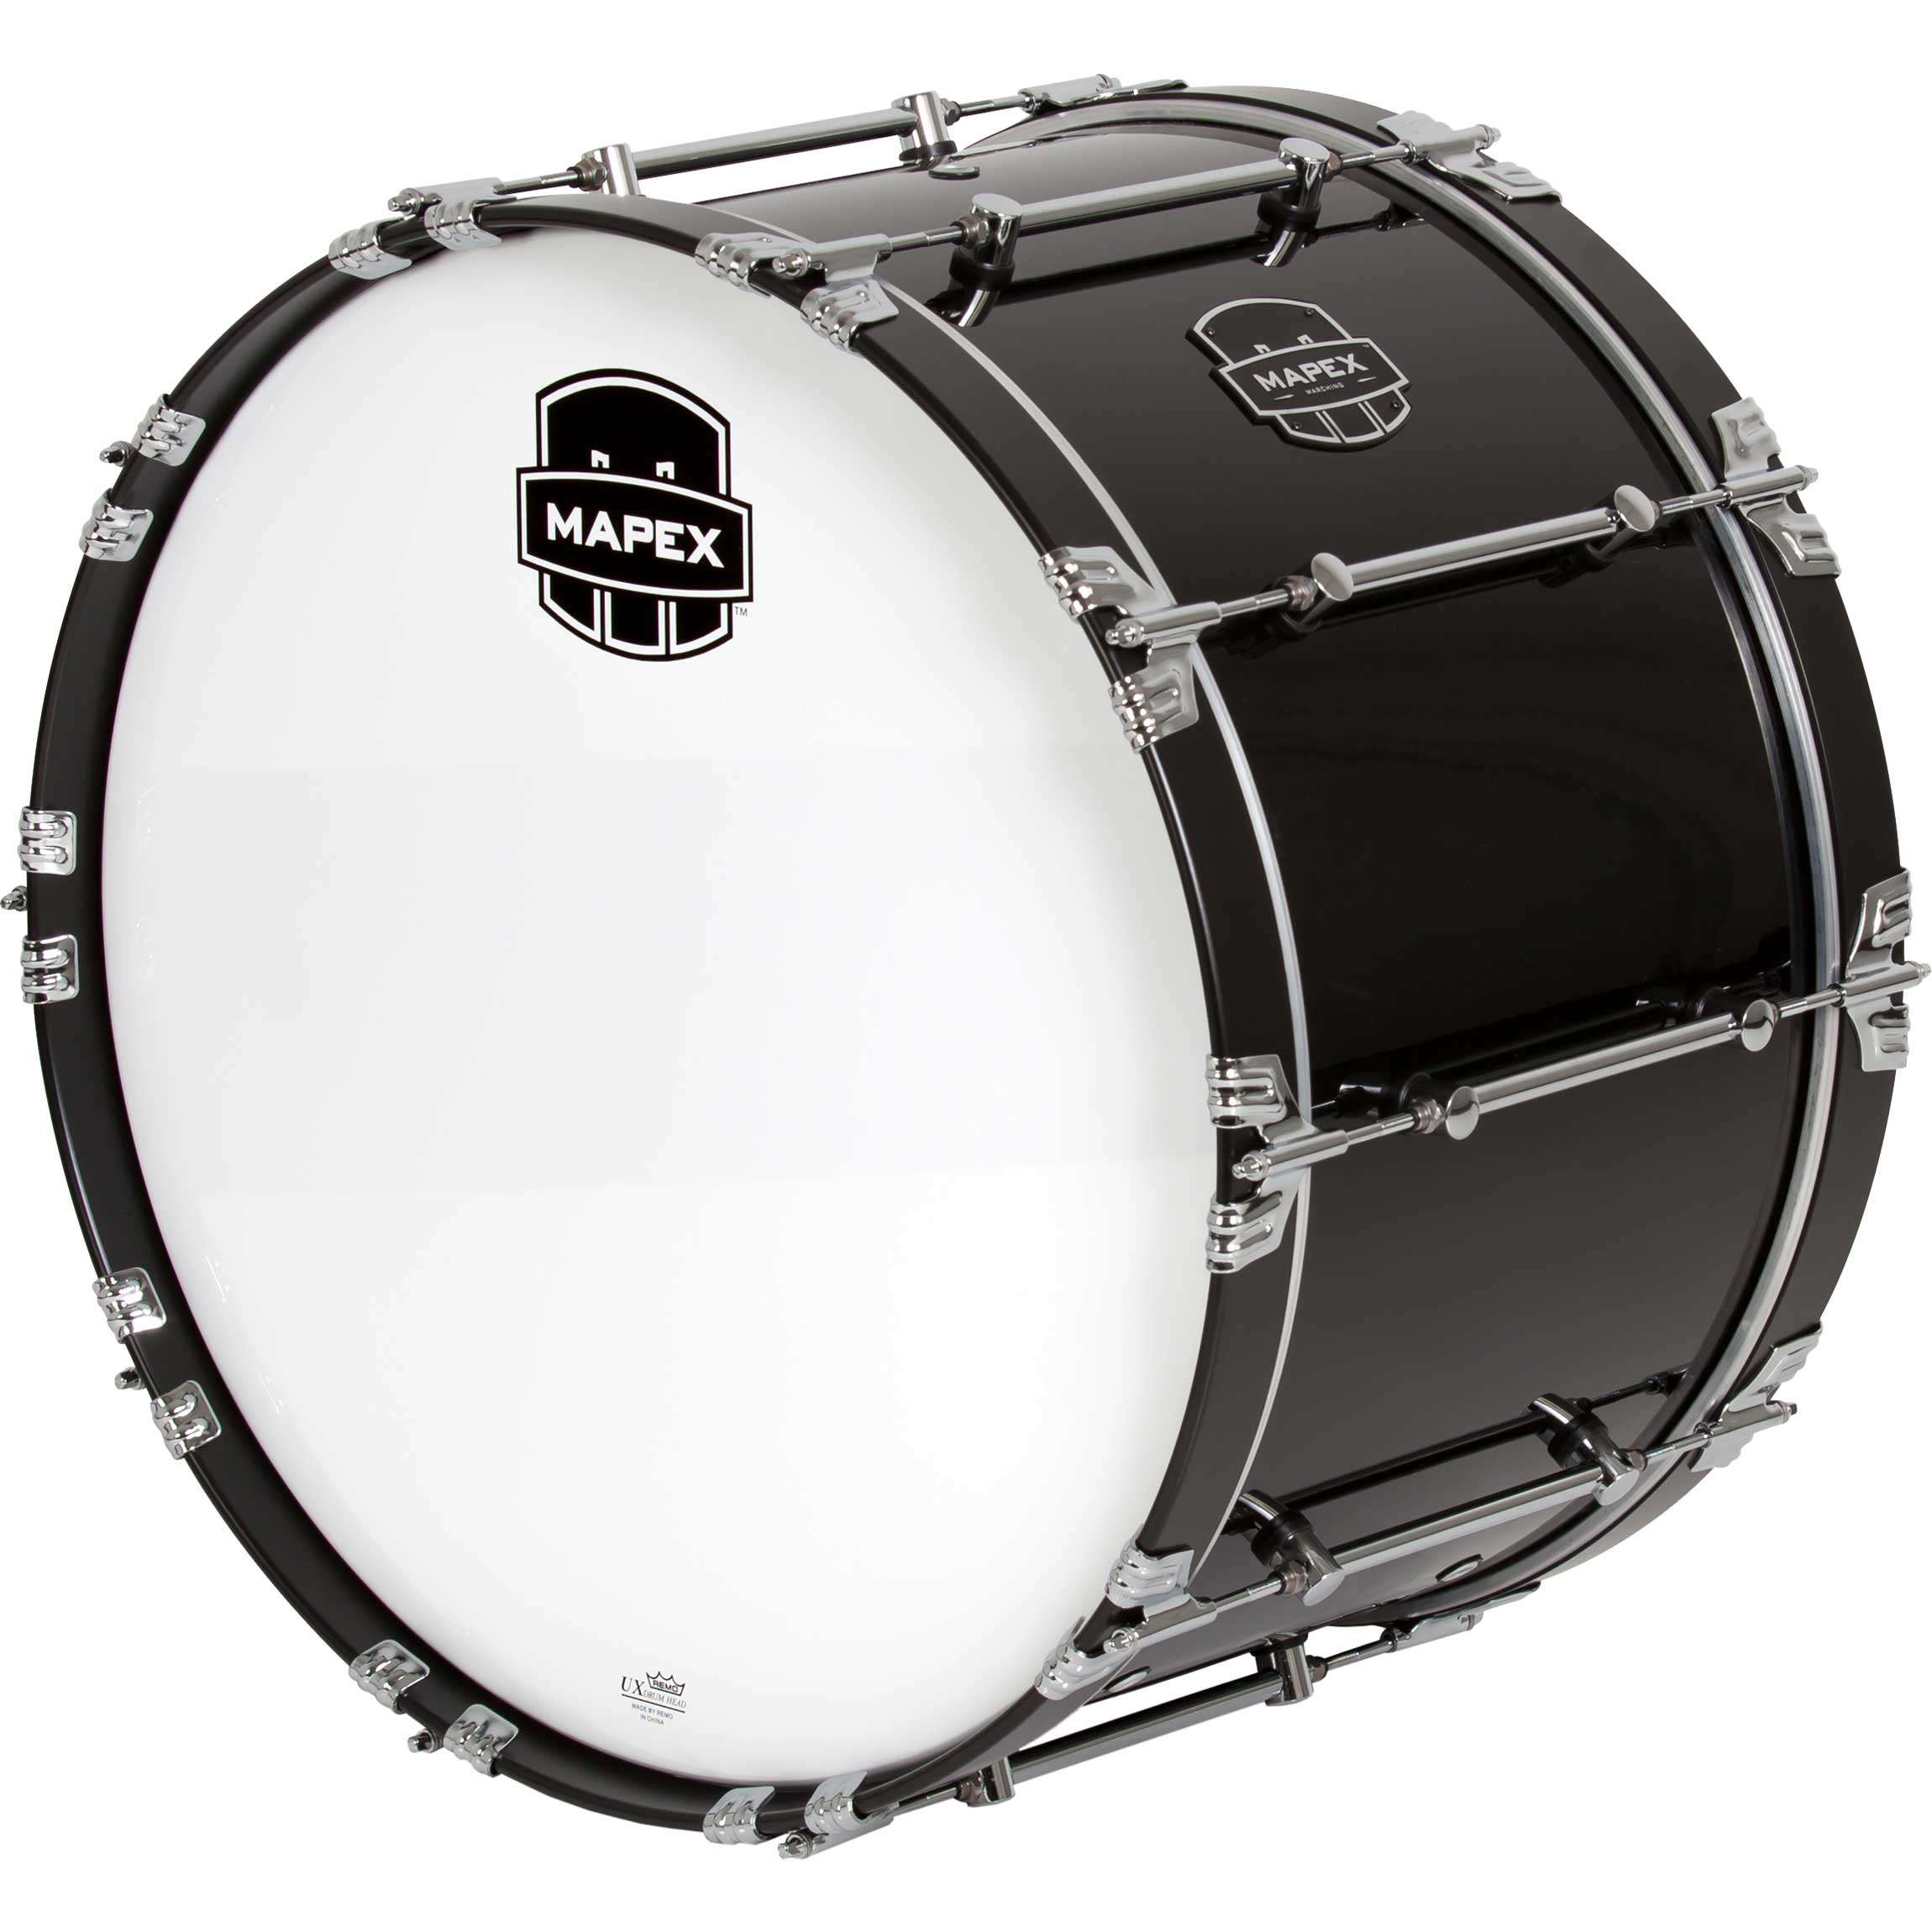 mapex 24 quantum marching bass drum in gloss black qcb2414 bl gc. Black Bedroom Furniture Sets. Home Design Ideas